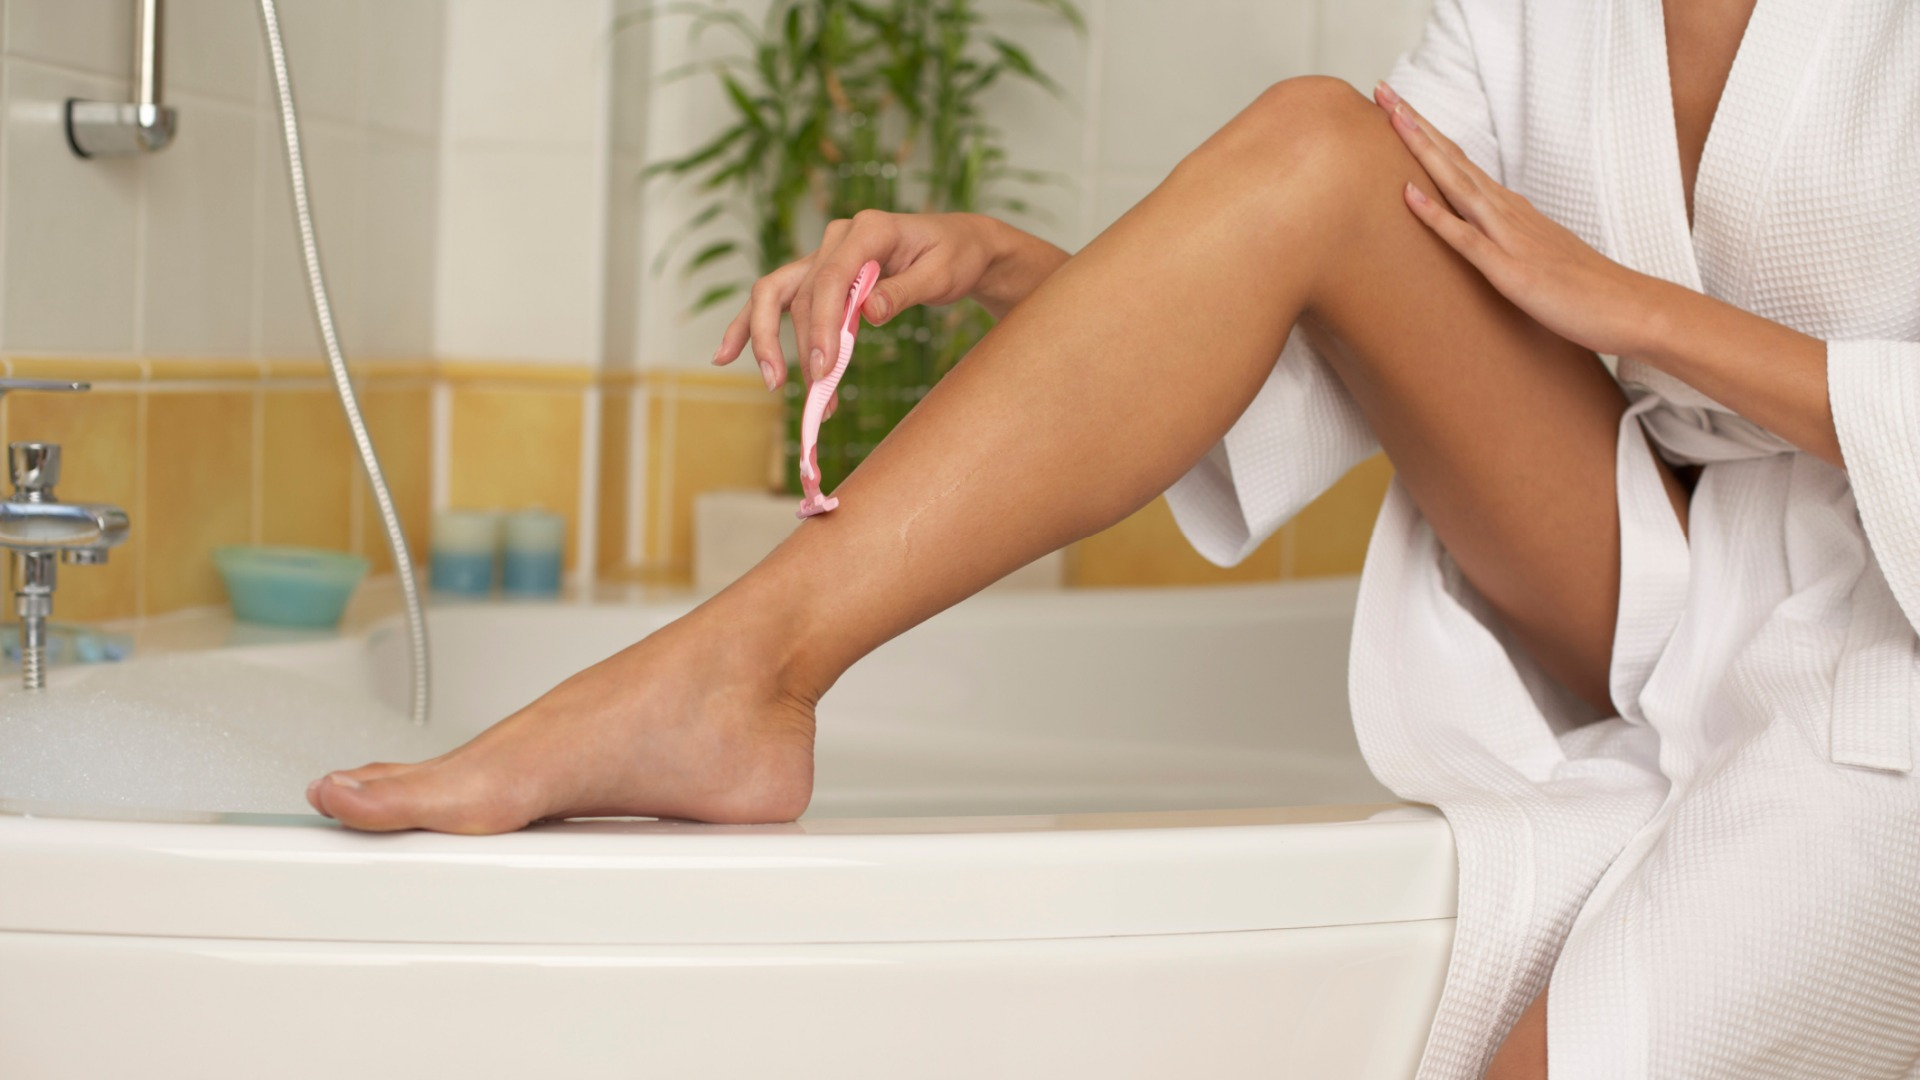 Shaving is a popular hair removal method